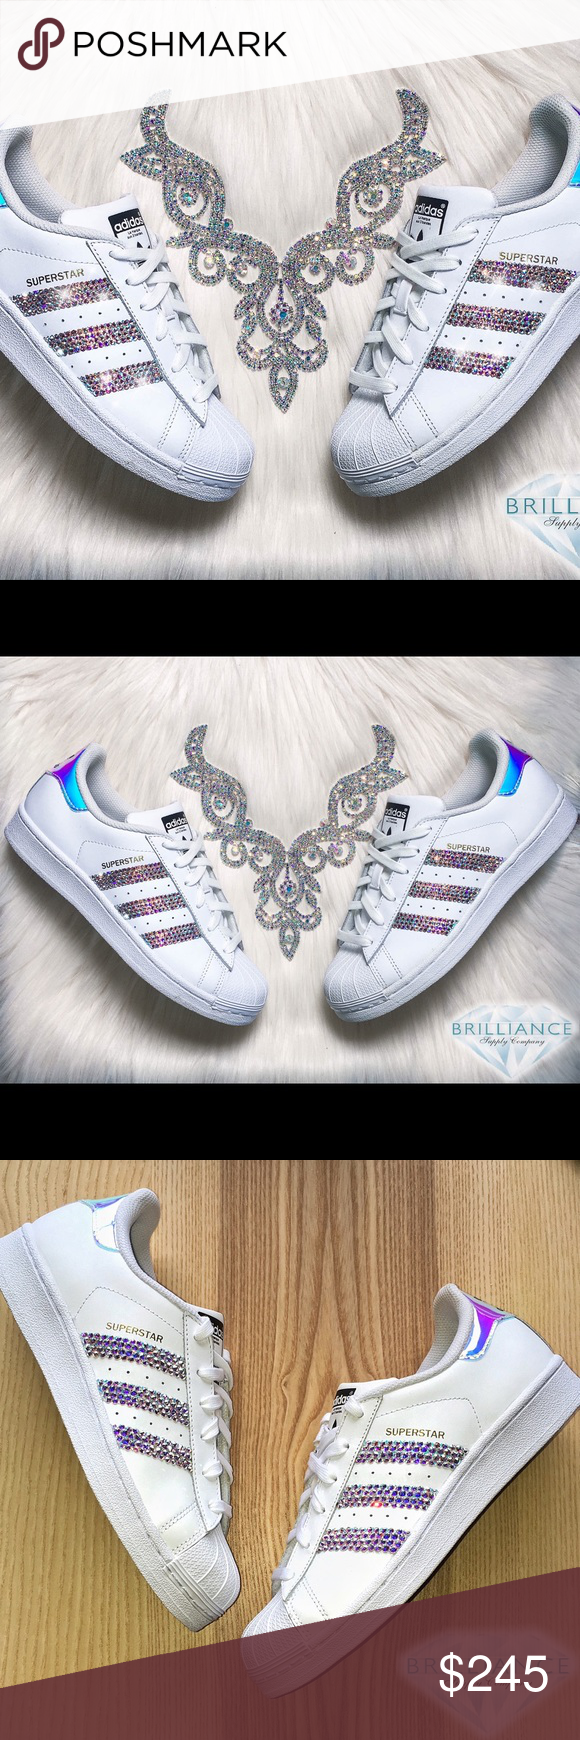 new product 24a9a 5dab2 Swarovski Nike Adidas Superstar Hologram Shoes Authentic Adidas Superstar  Shoes White Hologram Metallic- Extremely rare, they were a limited Adidas  release.